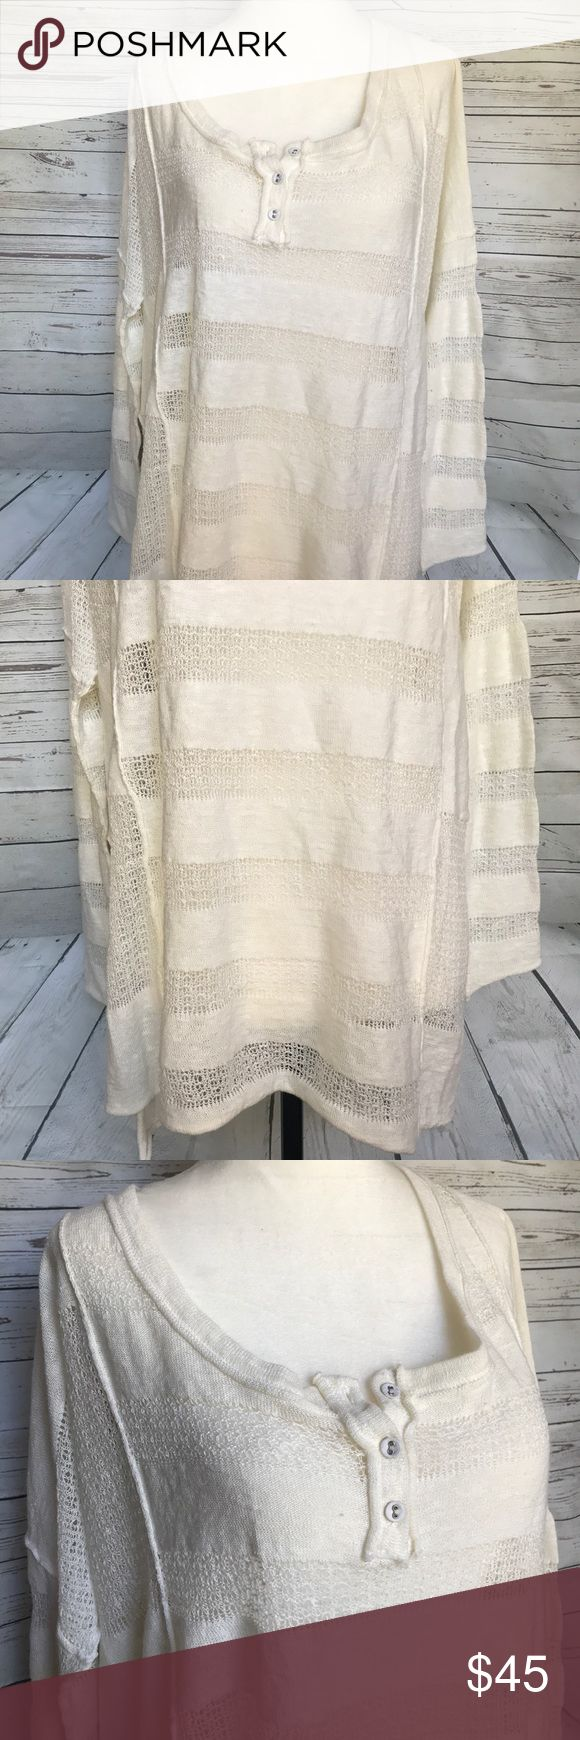 "Free People Off White Lace Long Sleeve top XS Free people off white cream colored lace detail long sleeve top size XS. New with tags. Smoke free home. Bust - 25"" length - 24"" Free People Tops Blouses"